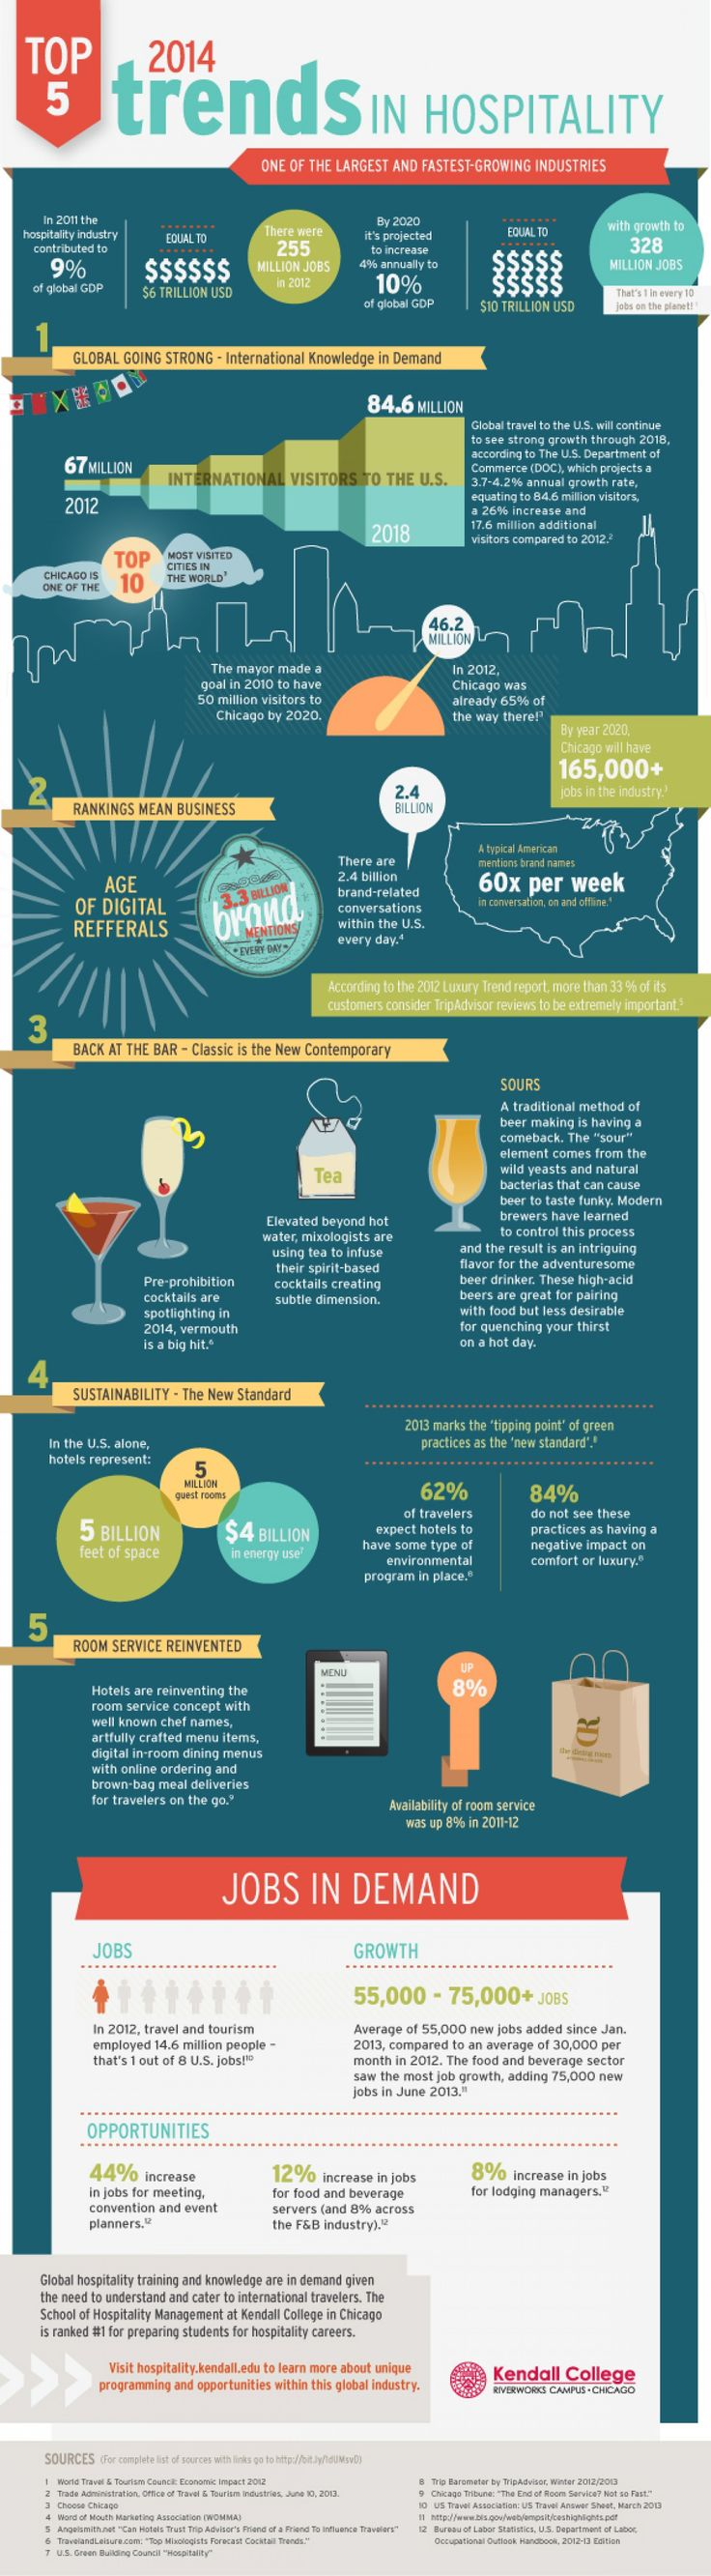 Top 5 Trends in Hospitality for 2014